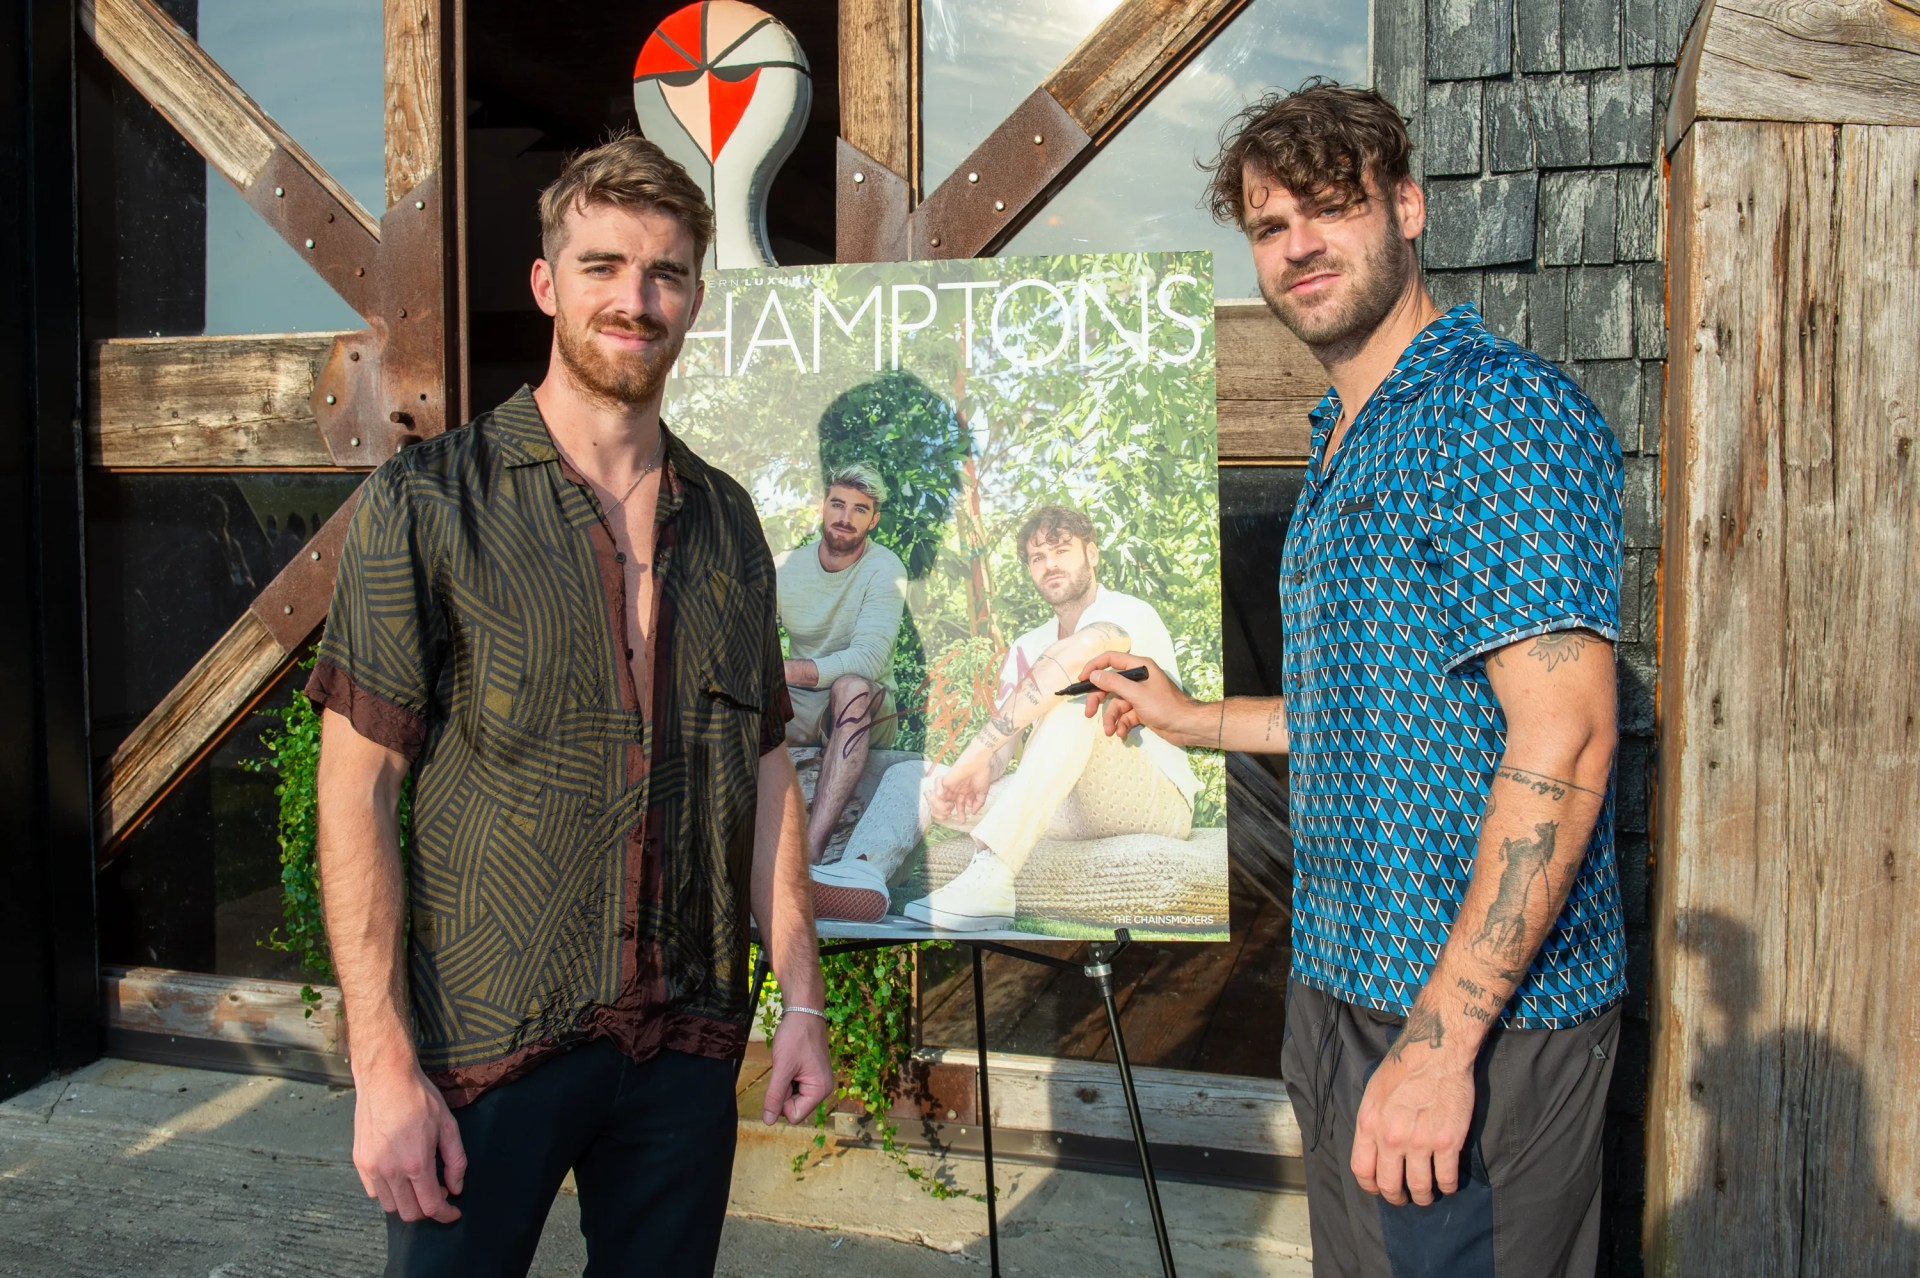 Drew Taggart  and Alex Pall attend Hamptons Magazine x The Chainsmokers VIP Dinner at The Barn at Nova's Ark on July 25, 2020 in Watermill, New York.